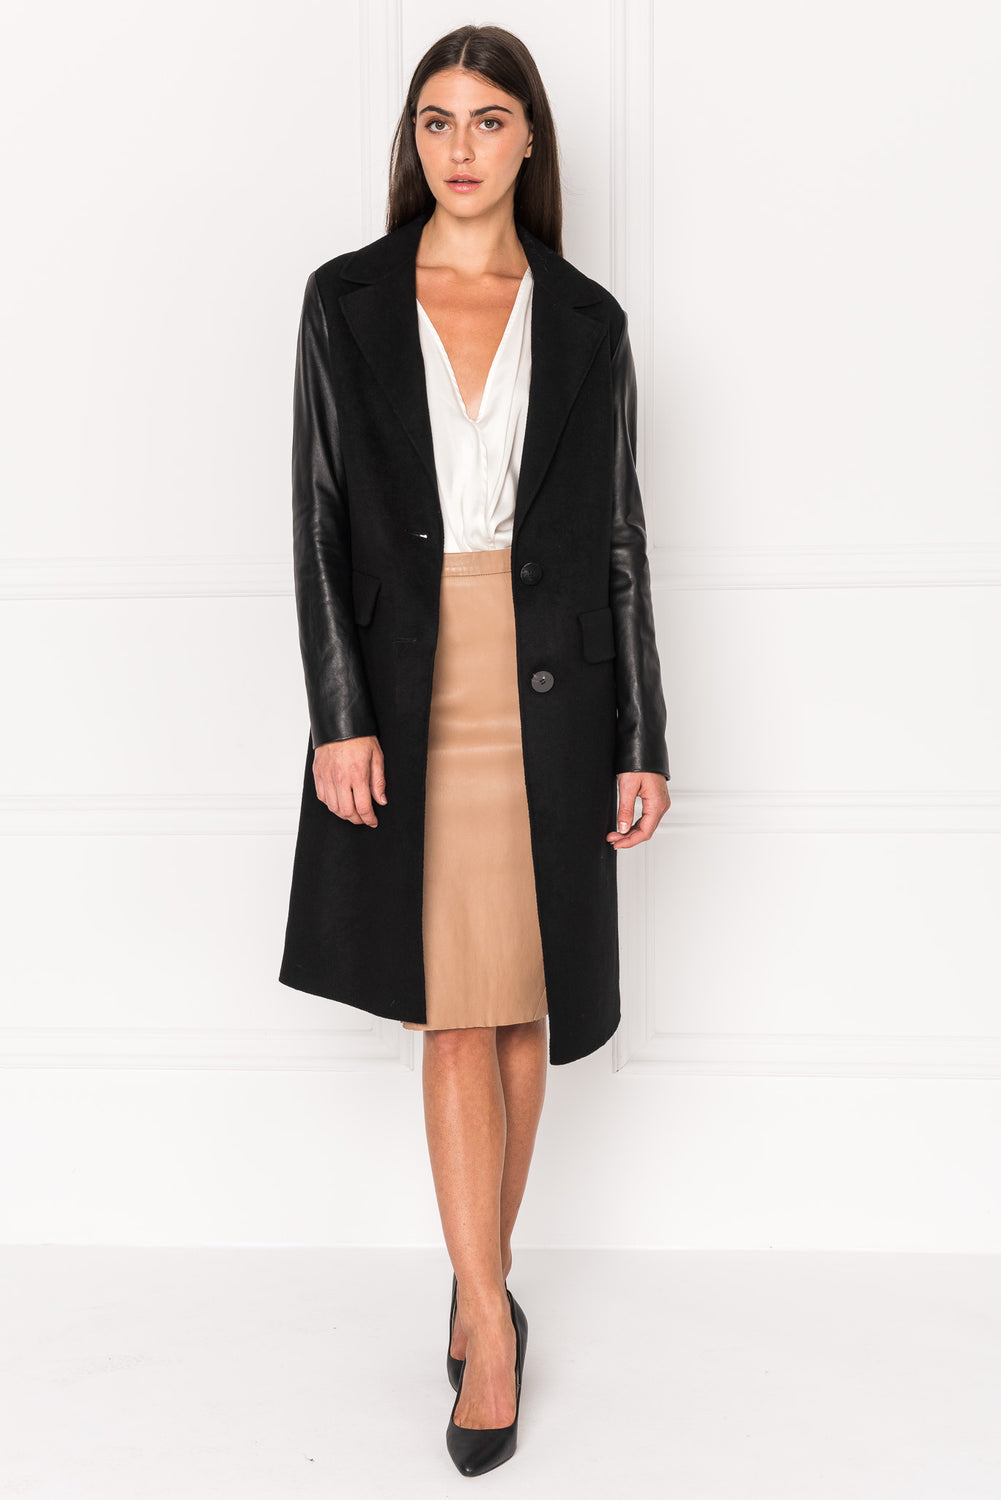 MAERA Wool Coat With Leather Sleeves